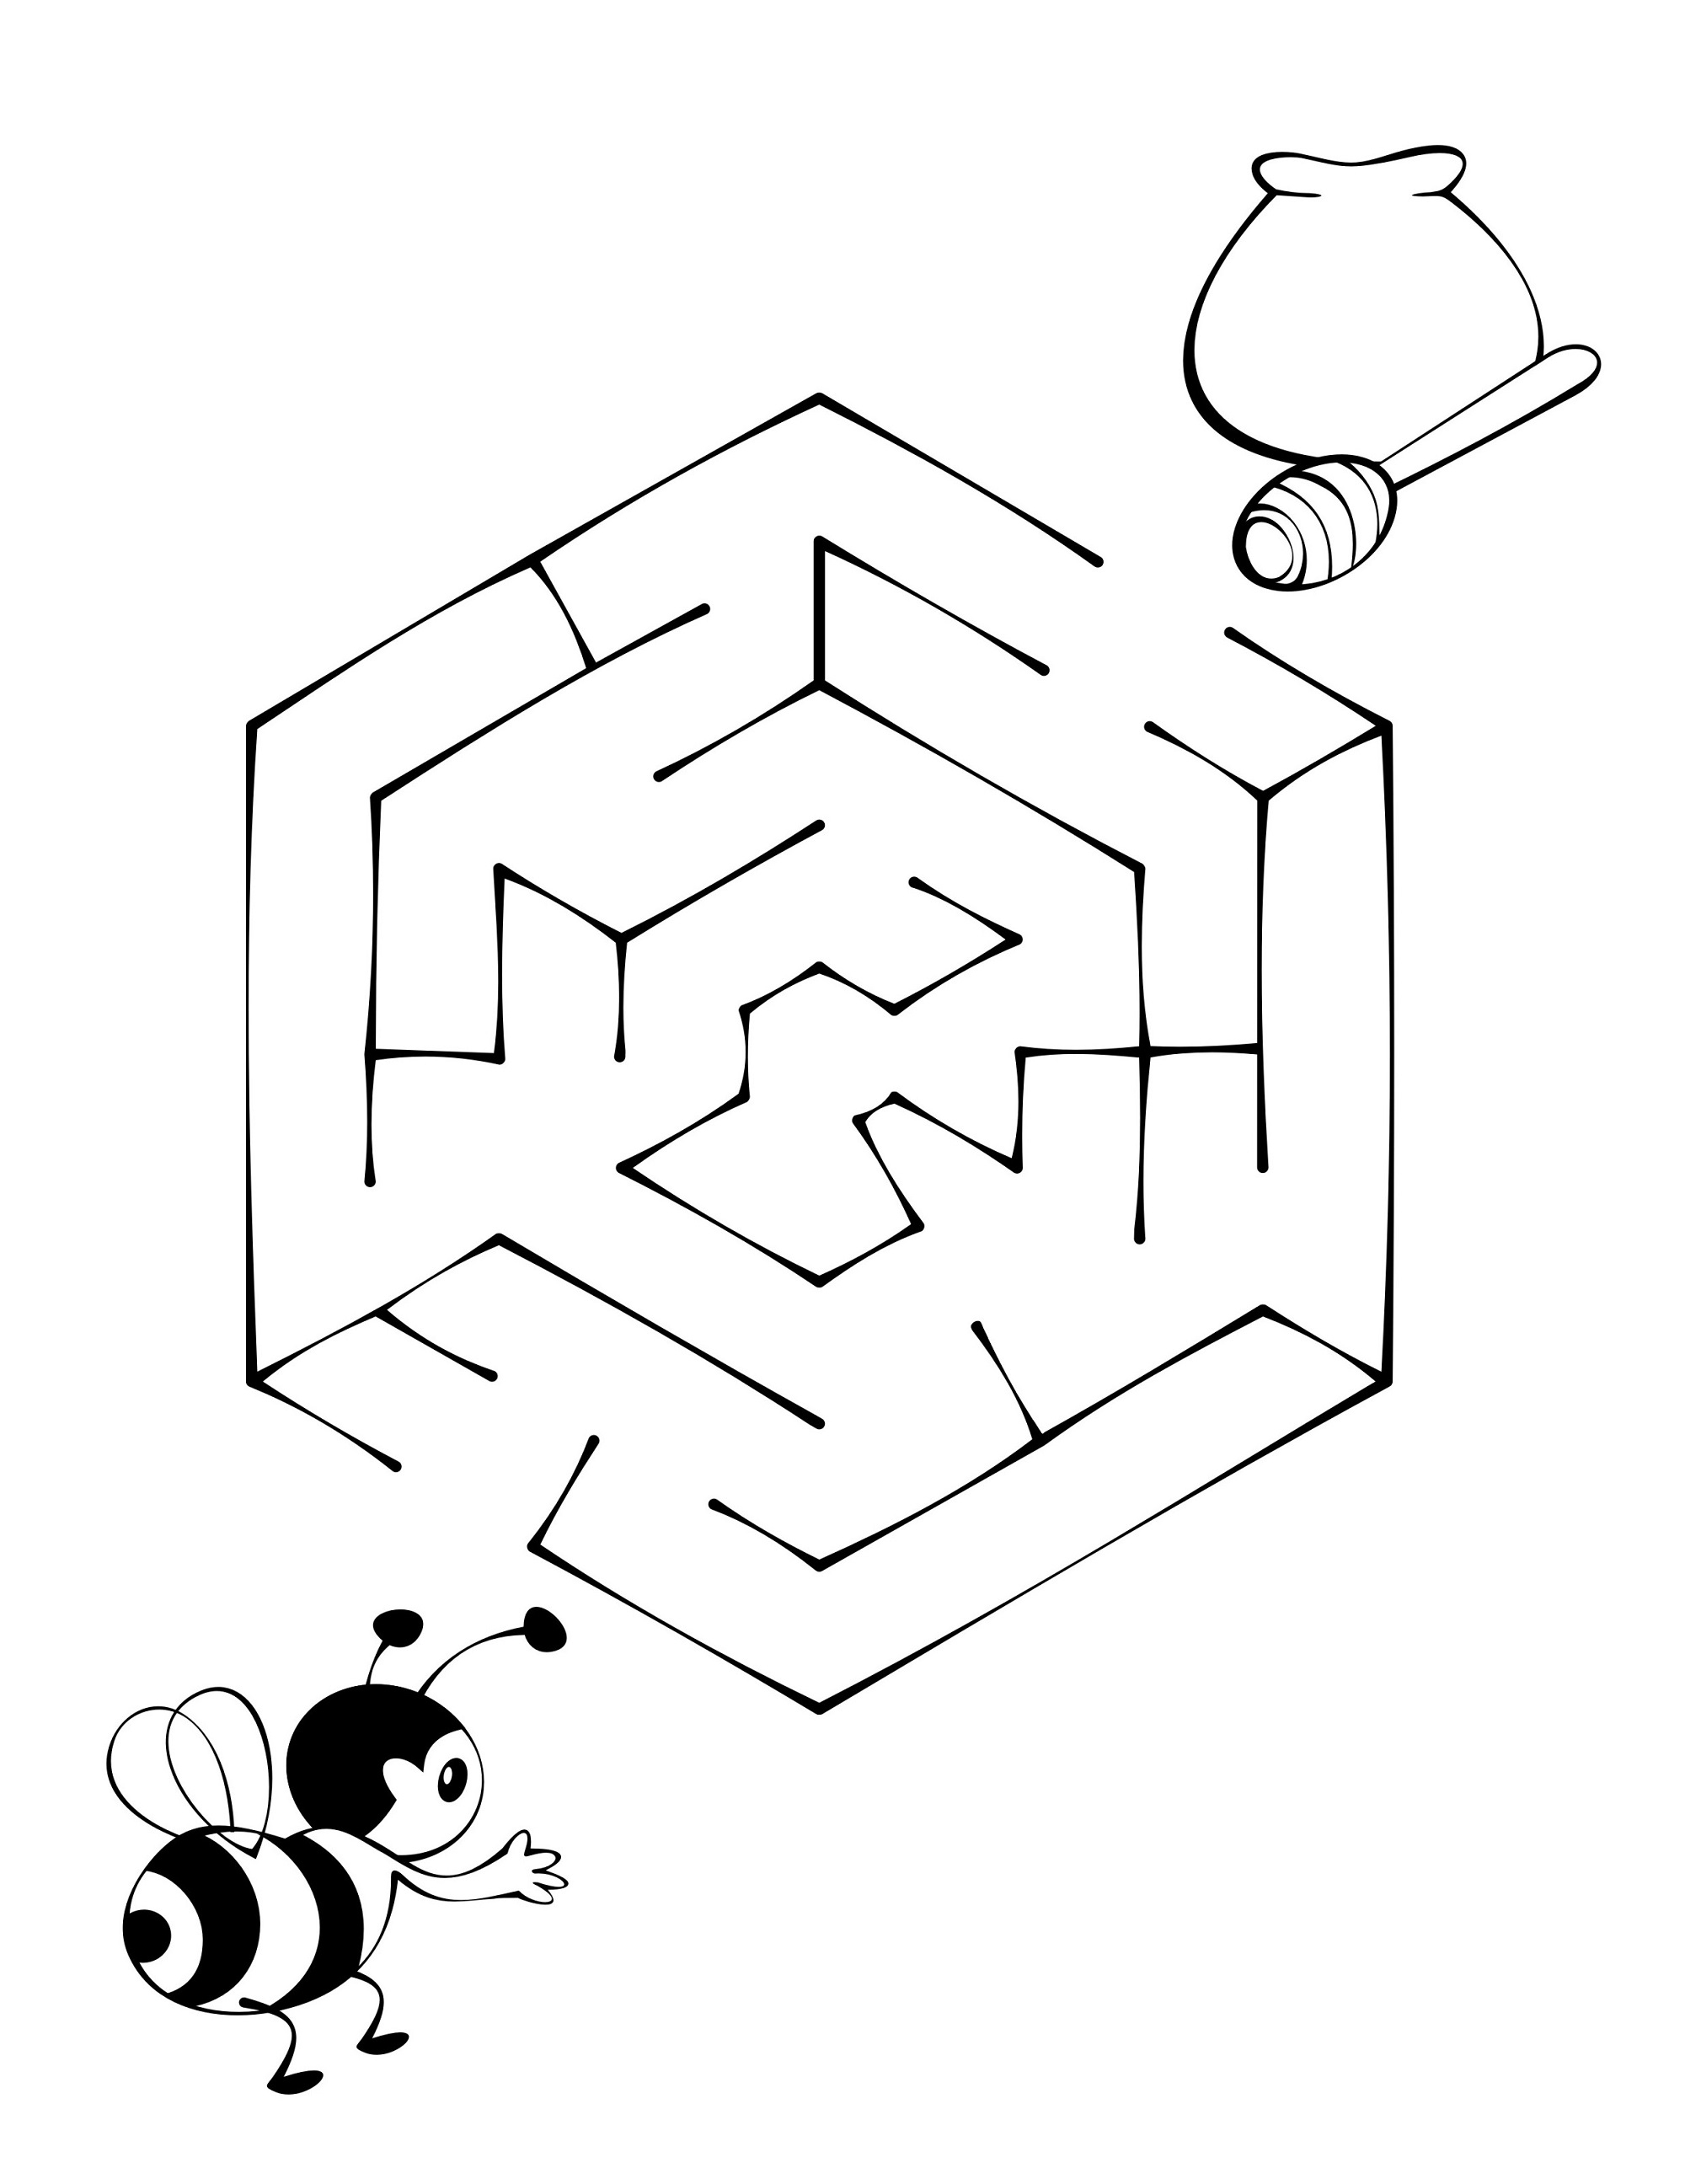 Maze Puzzle For Kids To Print | Kiddo Shelter - Printable Puzzle Mazes